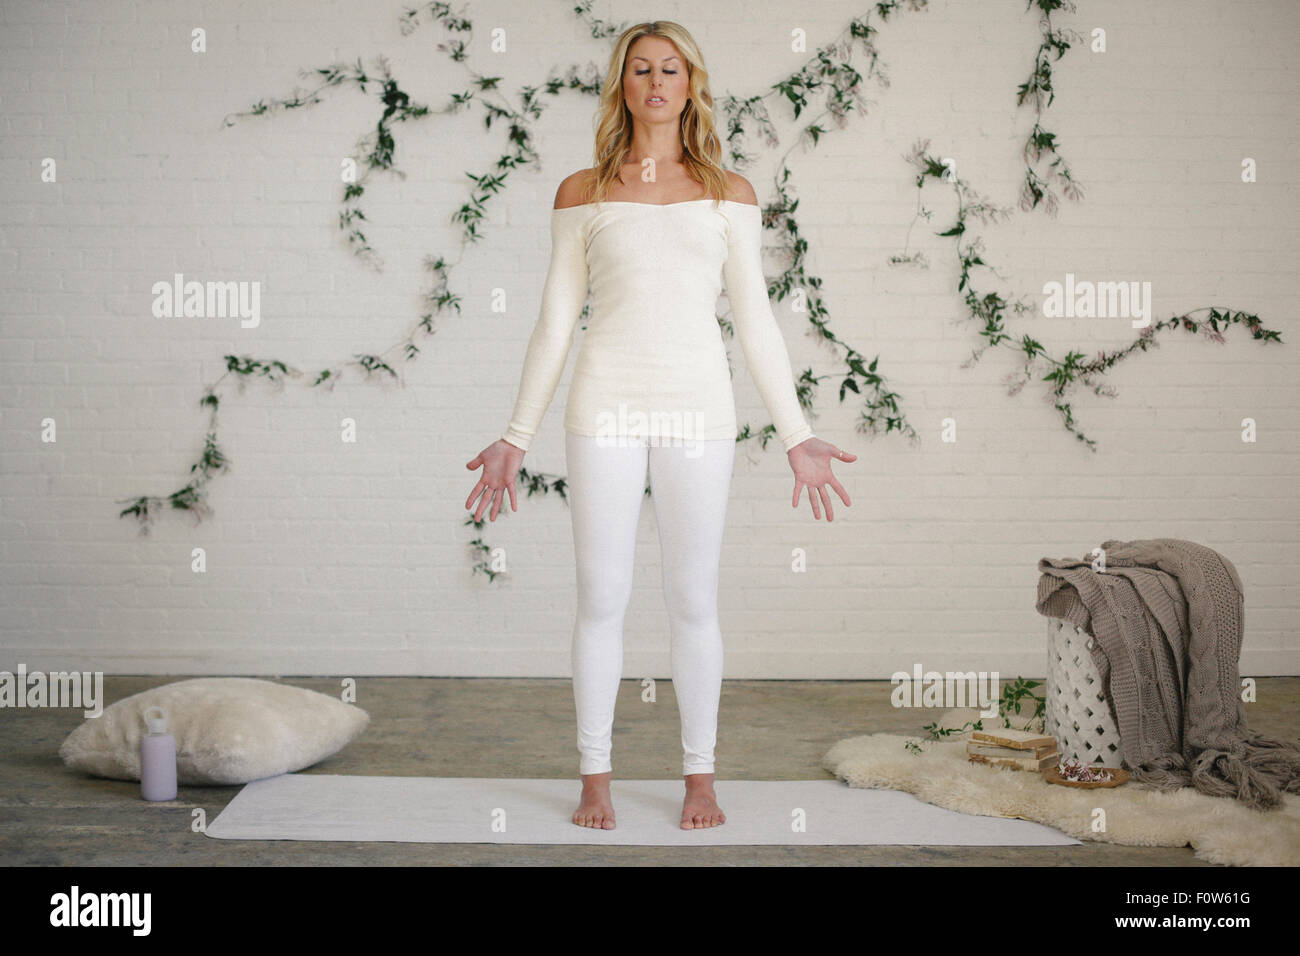 A blonde woman in a white leotard and leggings, standing on a white mat in a room. A creeper plant on the wall behind - Stock Image